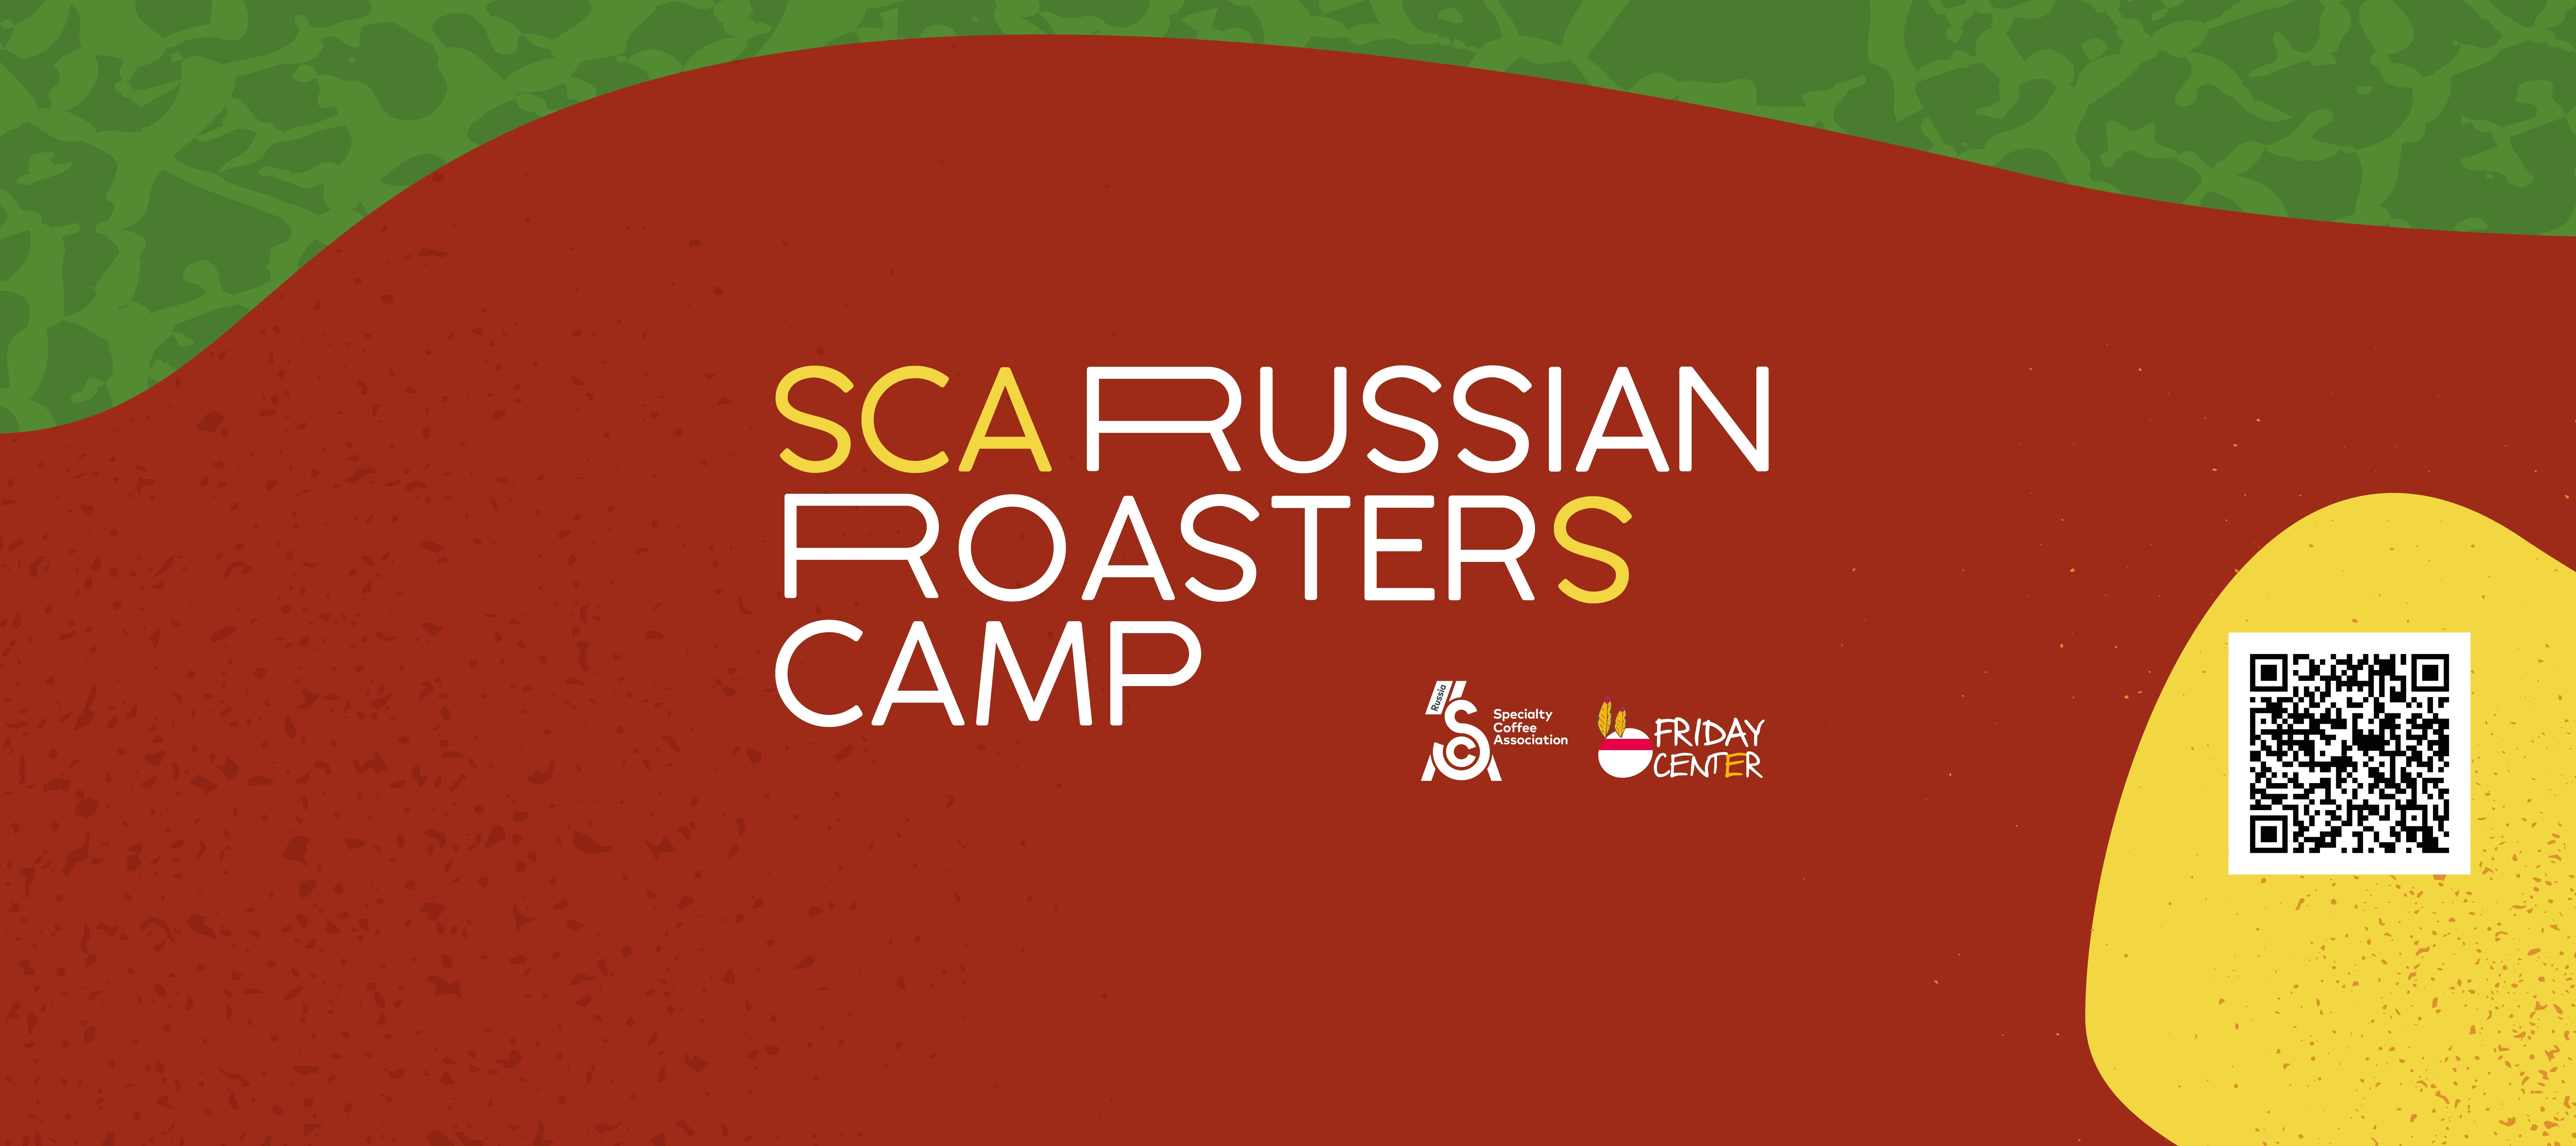 SCA RUSSIAN ROASTERS CAMP